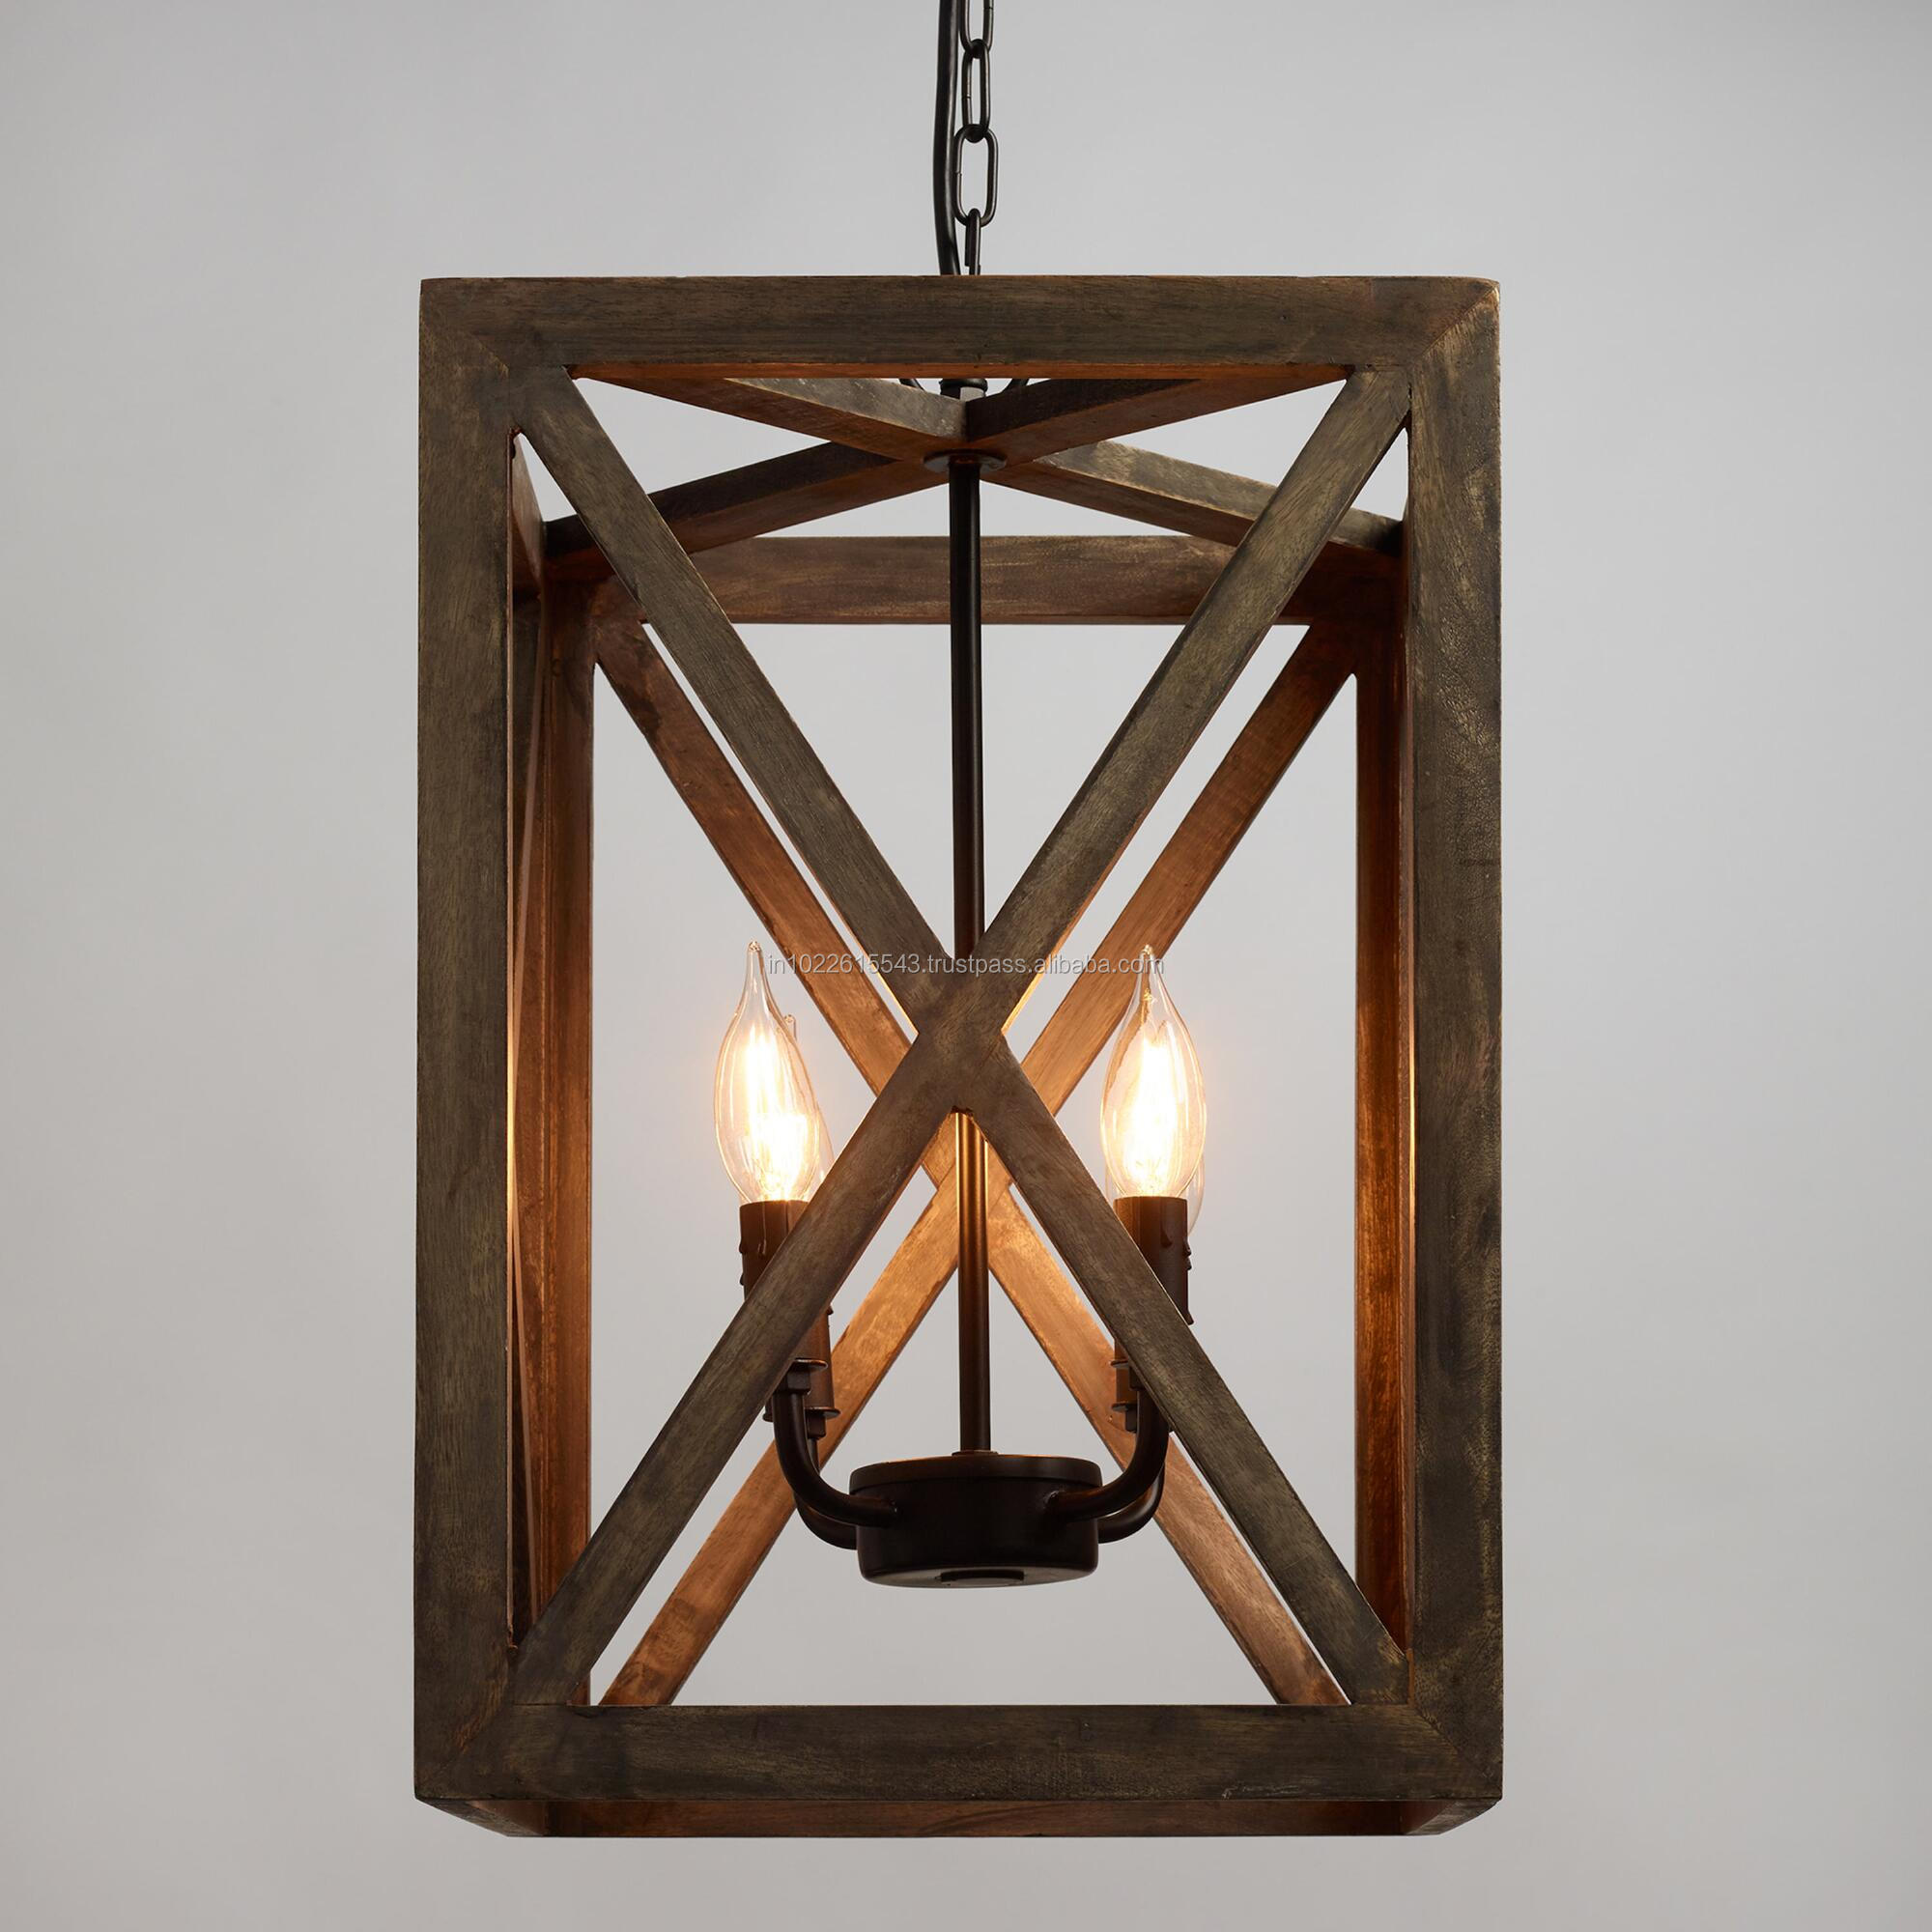 Industrial Wood Frame Drop Down Ceiling Lights. Vintage Mango Wood Ceiling  Lamp